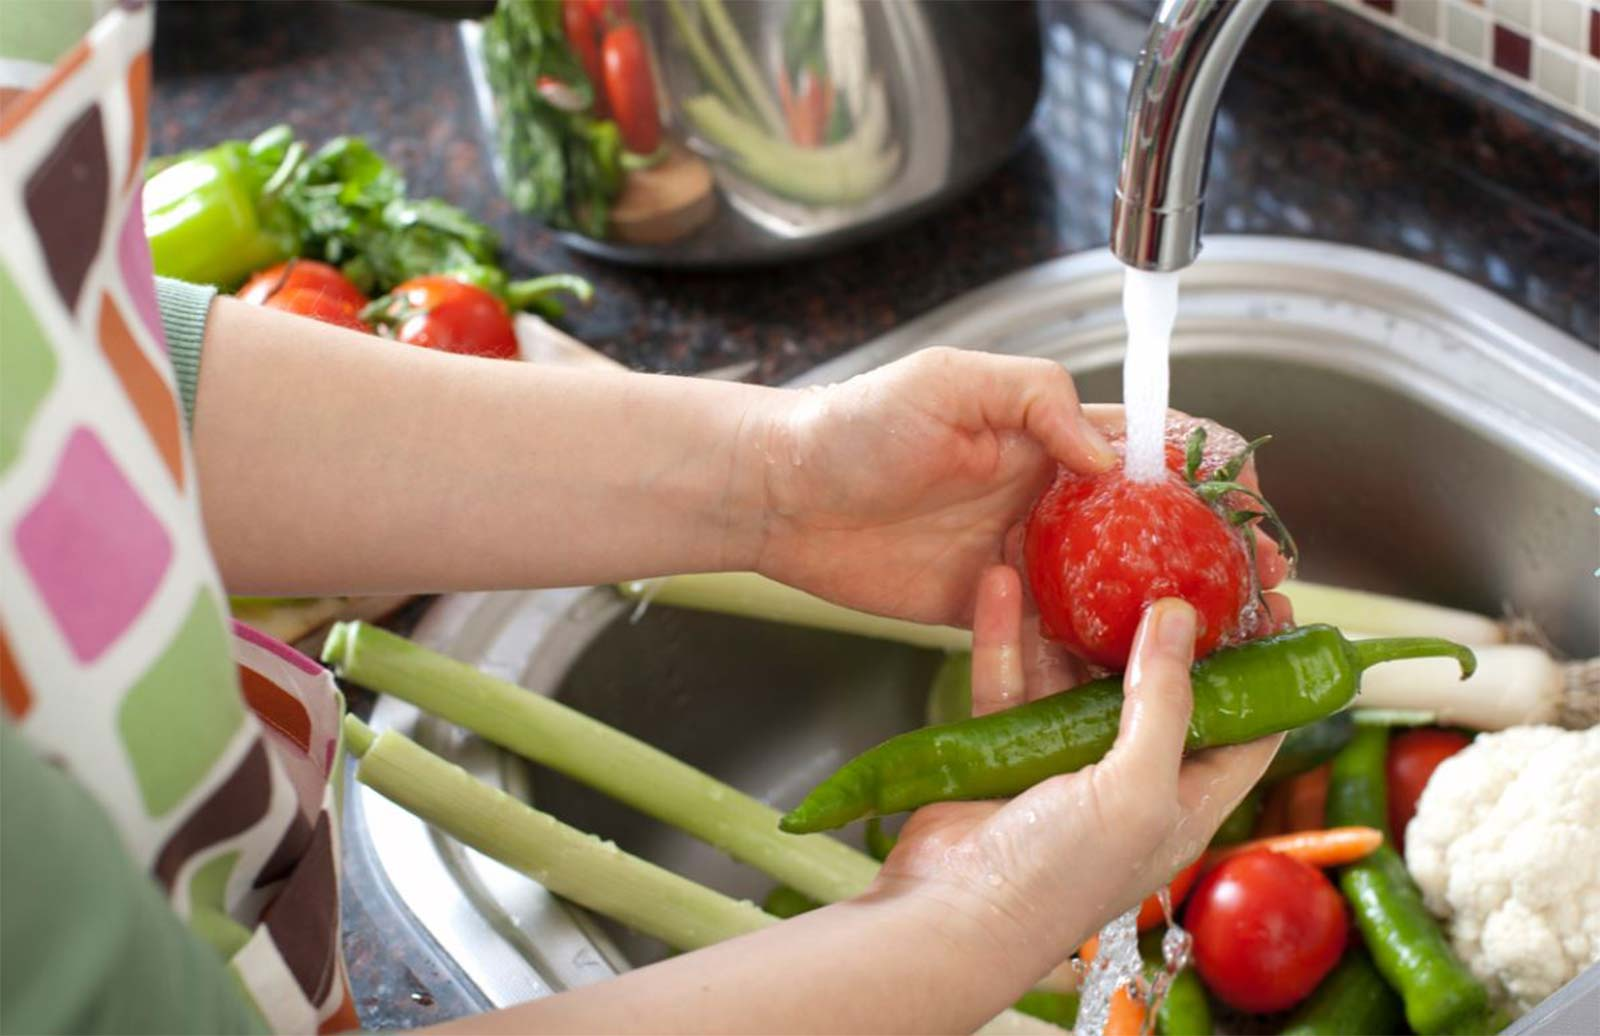 3-Current-SWC-Website-Photo_Hands-Washing-Vegetables